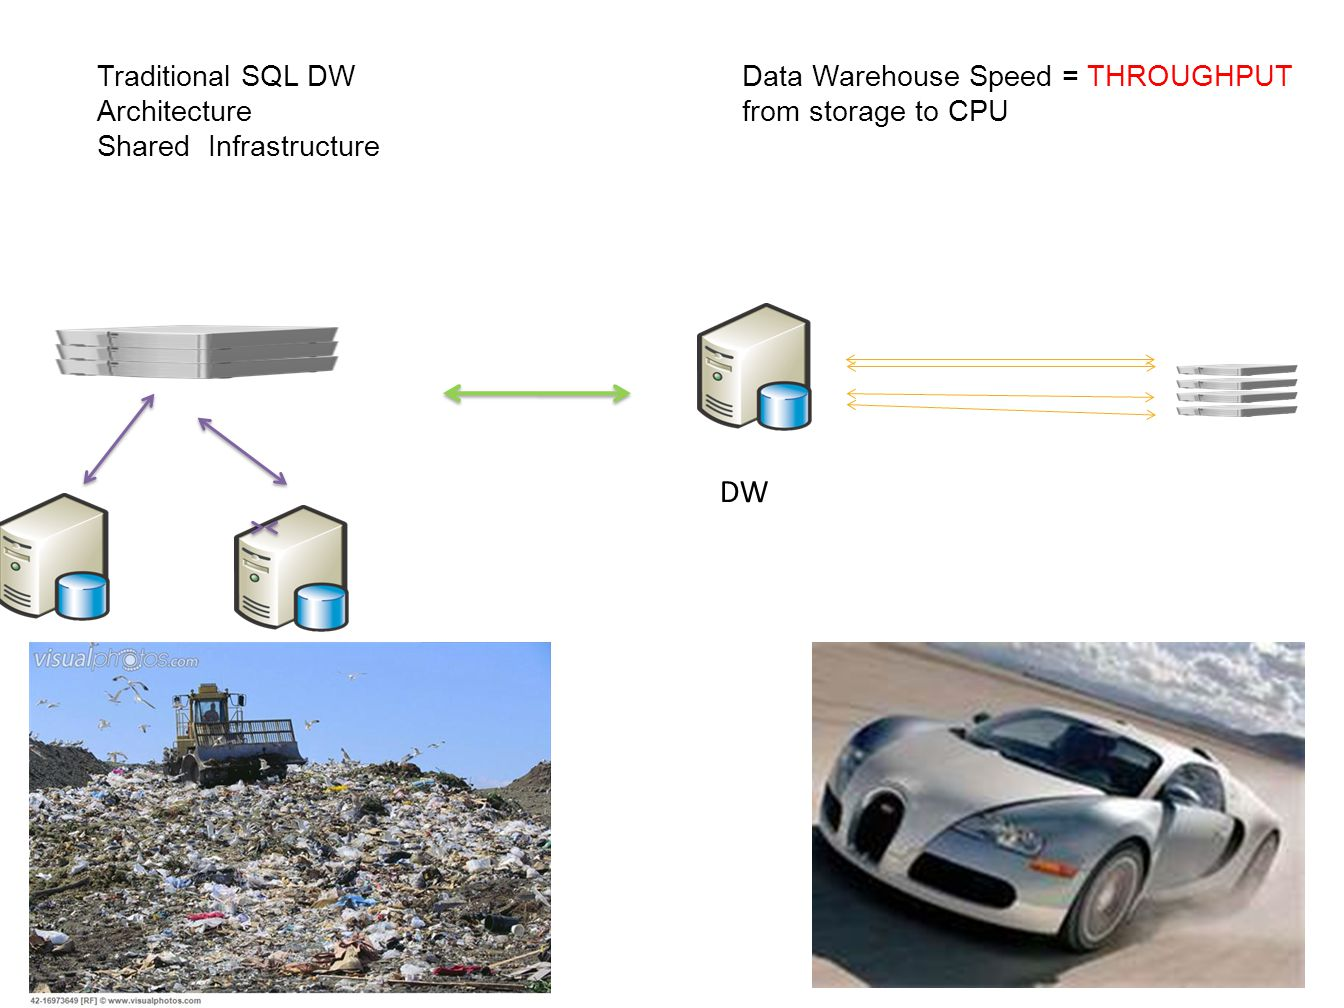 Enterprise Shared SAN Storage Dedicated Network Bandwidth Traditional SQL DW Architecture Shared Infrastructure Data Warehouse Speed = THROUGHPUT from storage to CPU DW